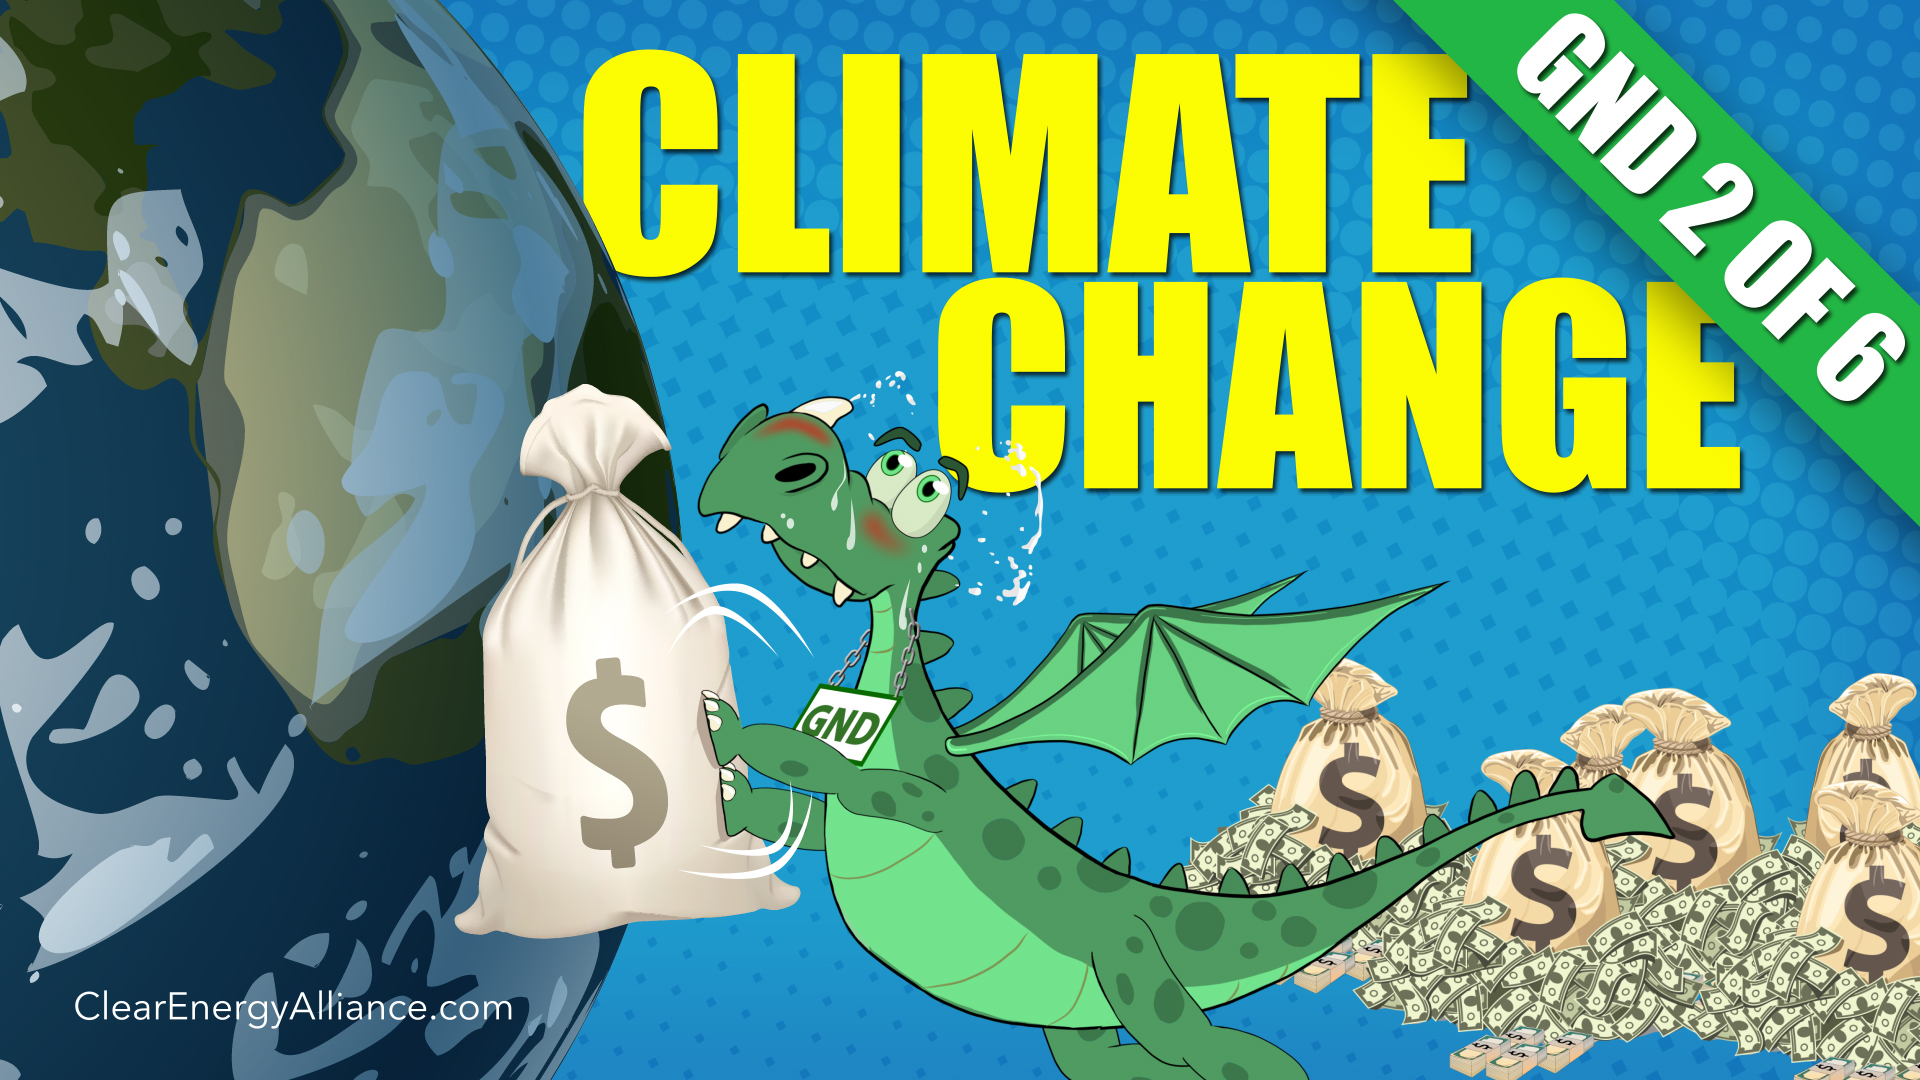 Green New Deal: Climate Change